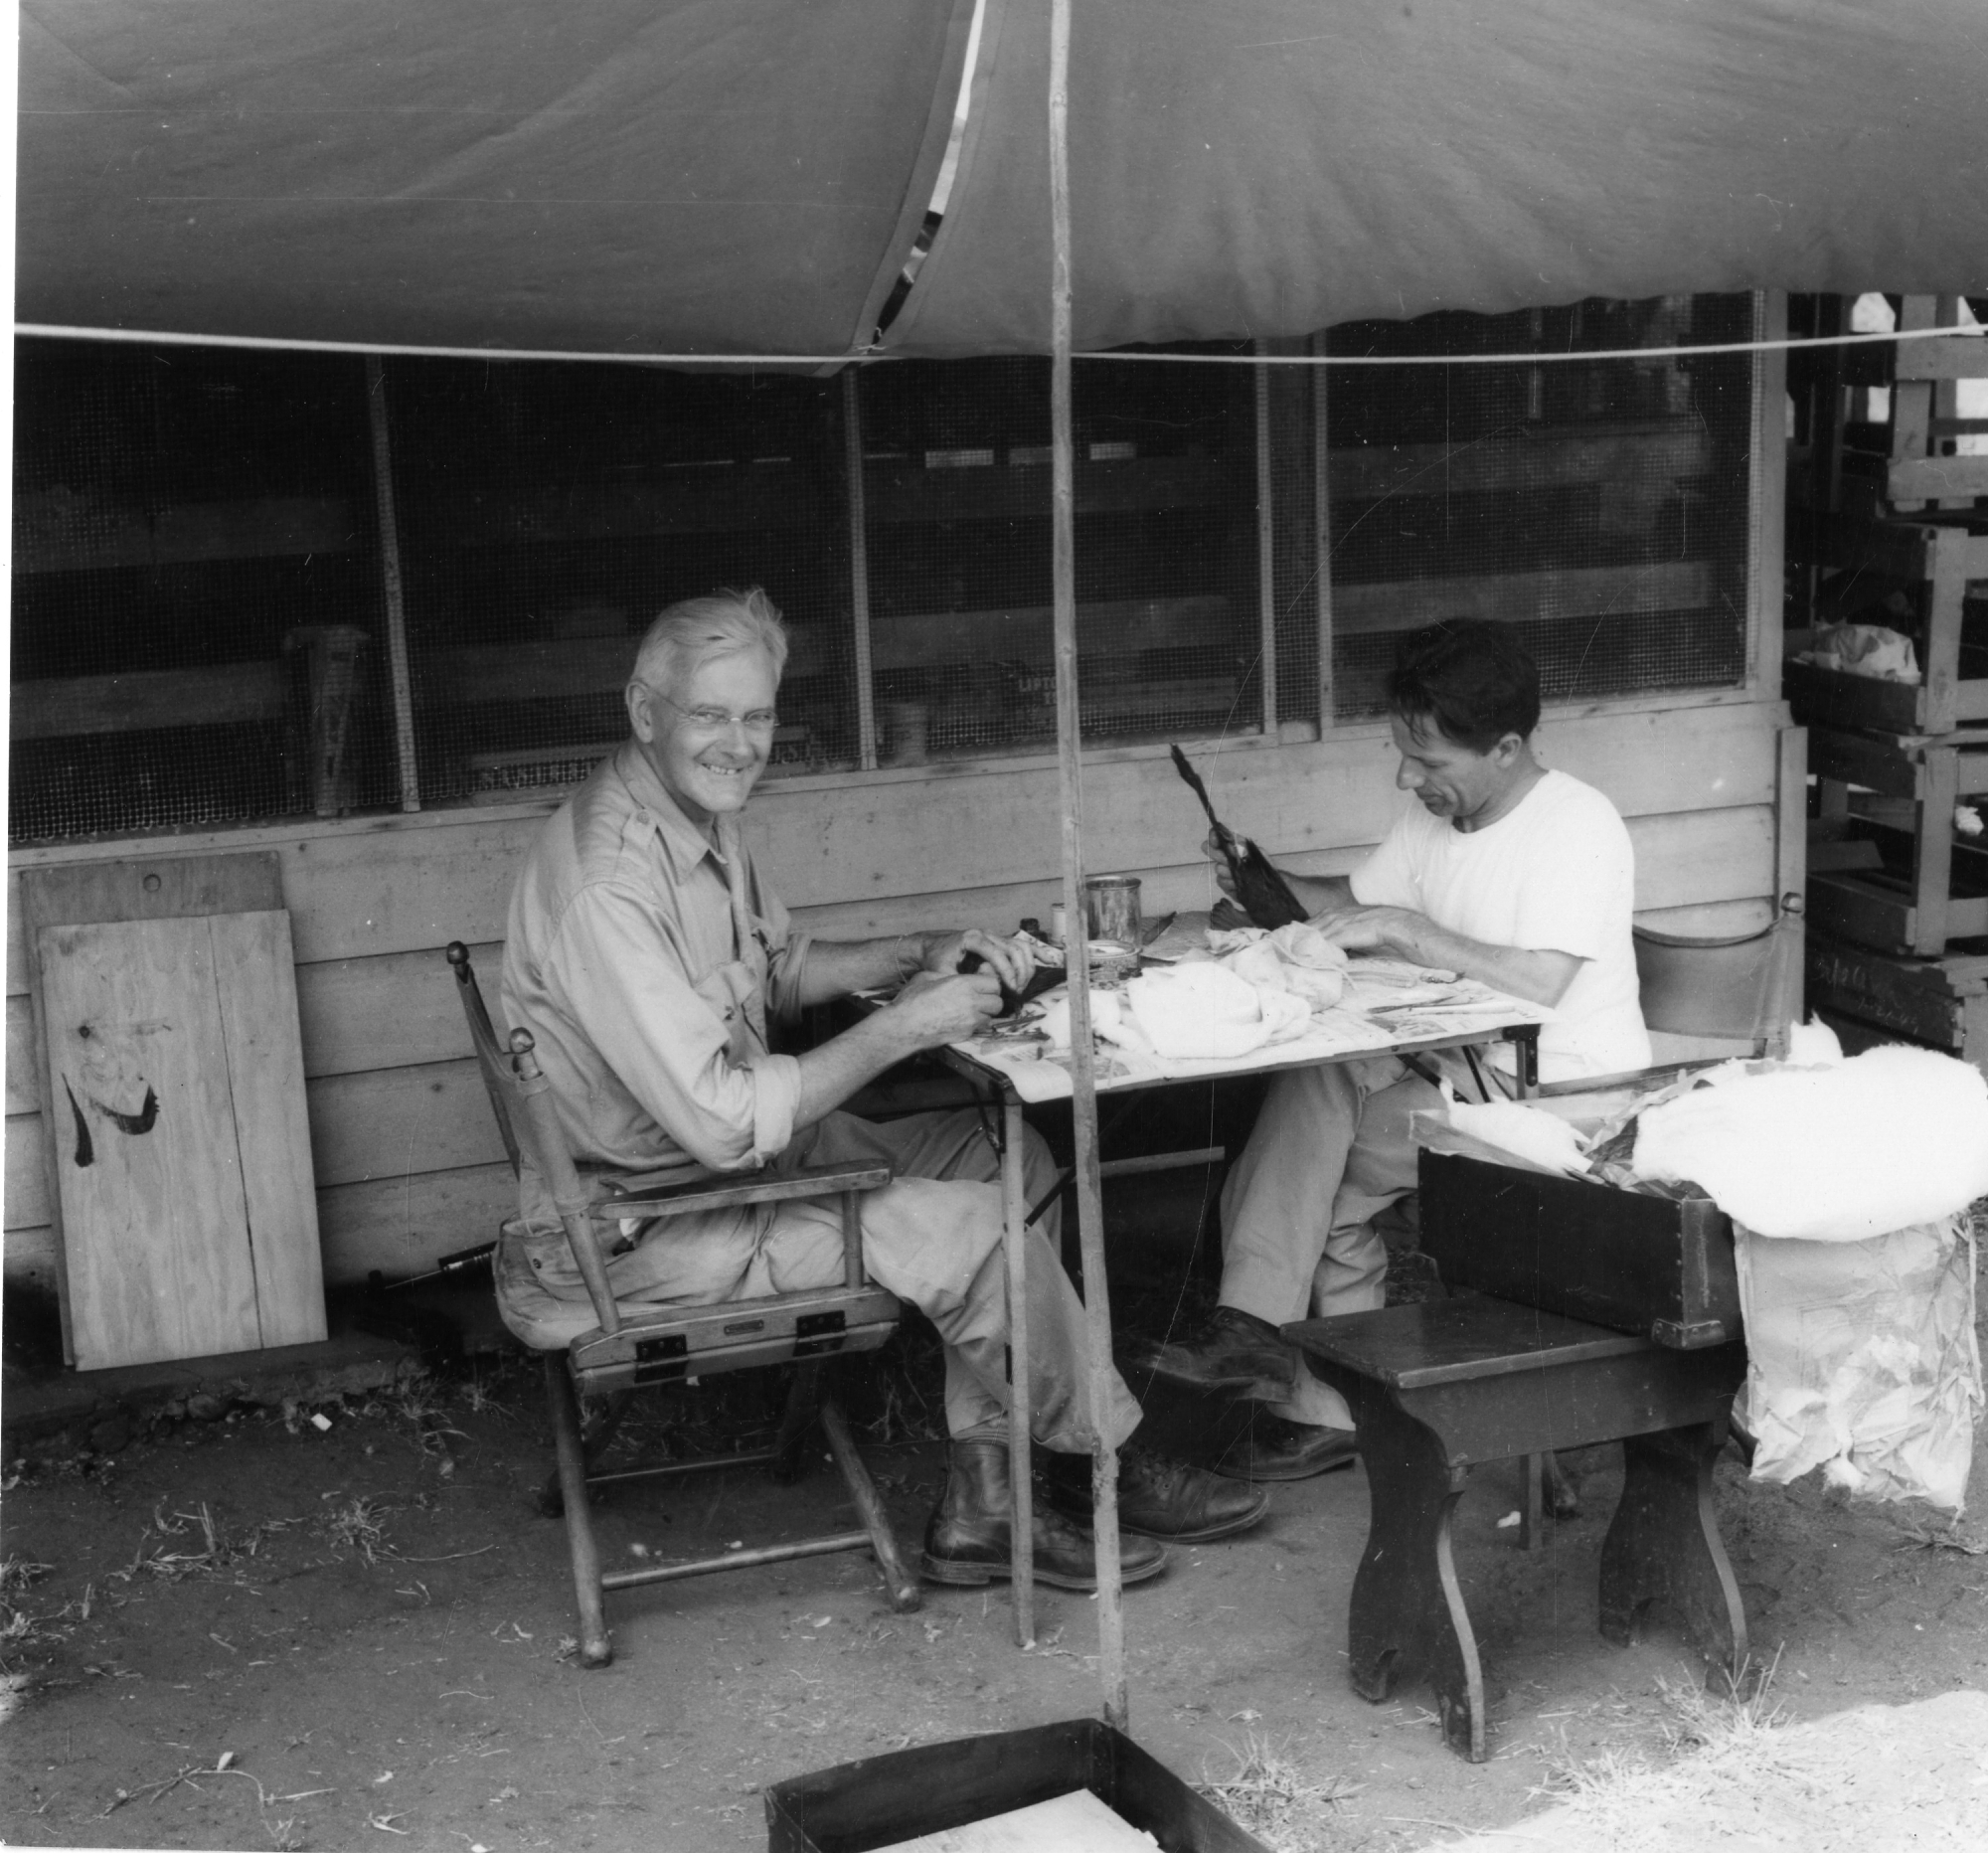 Smithsonian Secretary and ornithologist Alexander Wetmore and taxidermist Watson M. Perrygo preparin